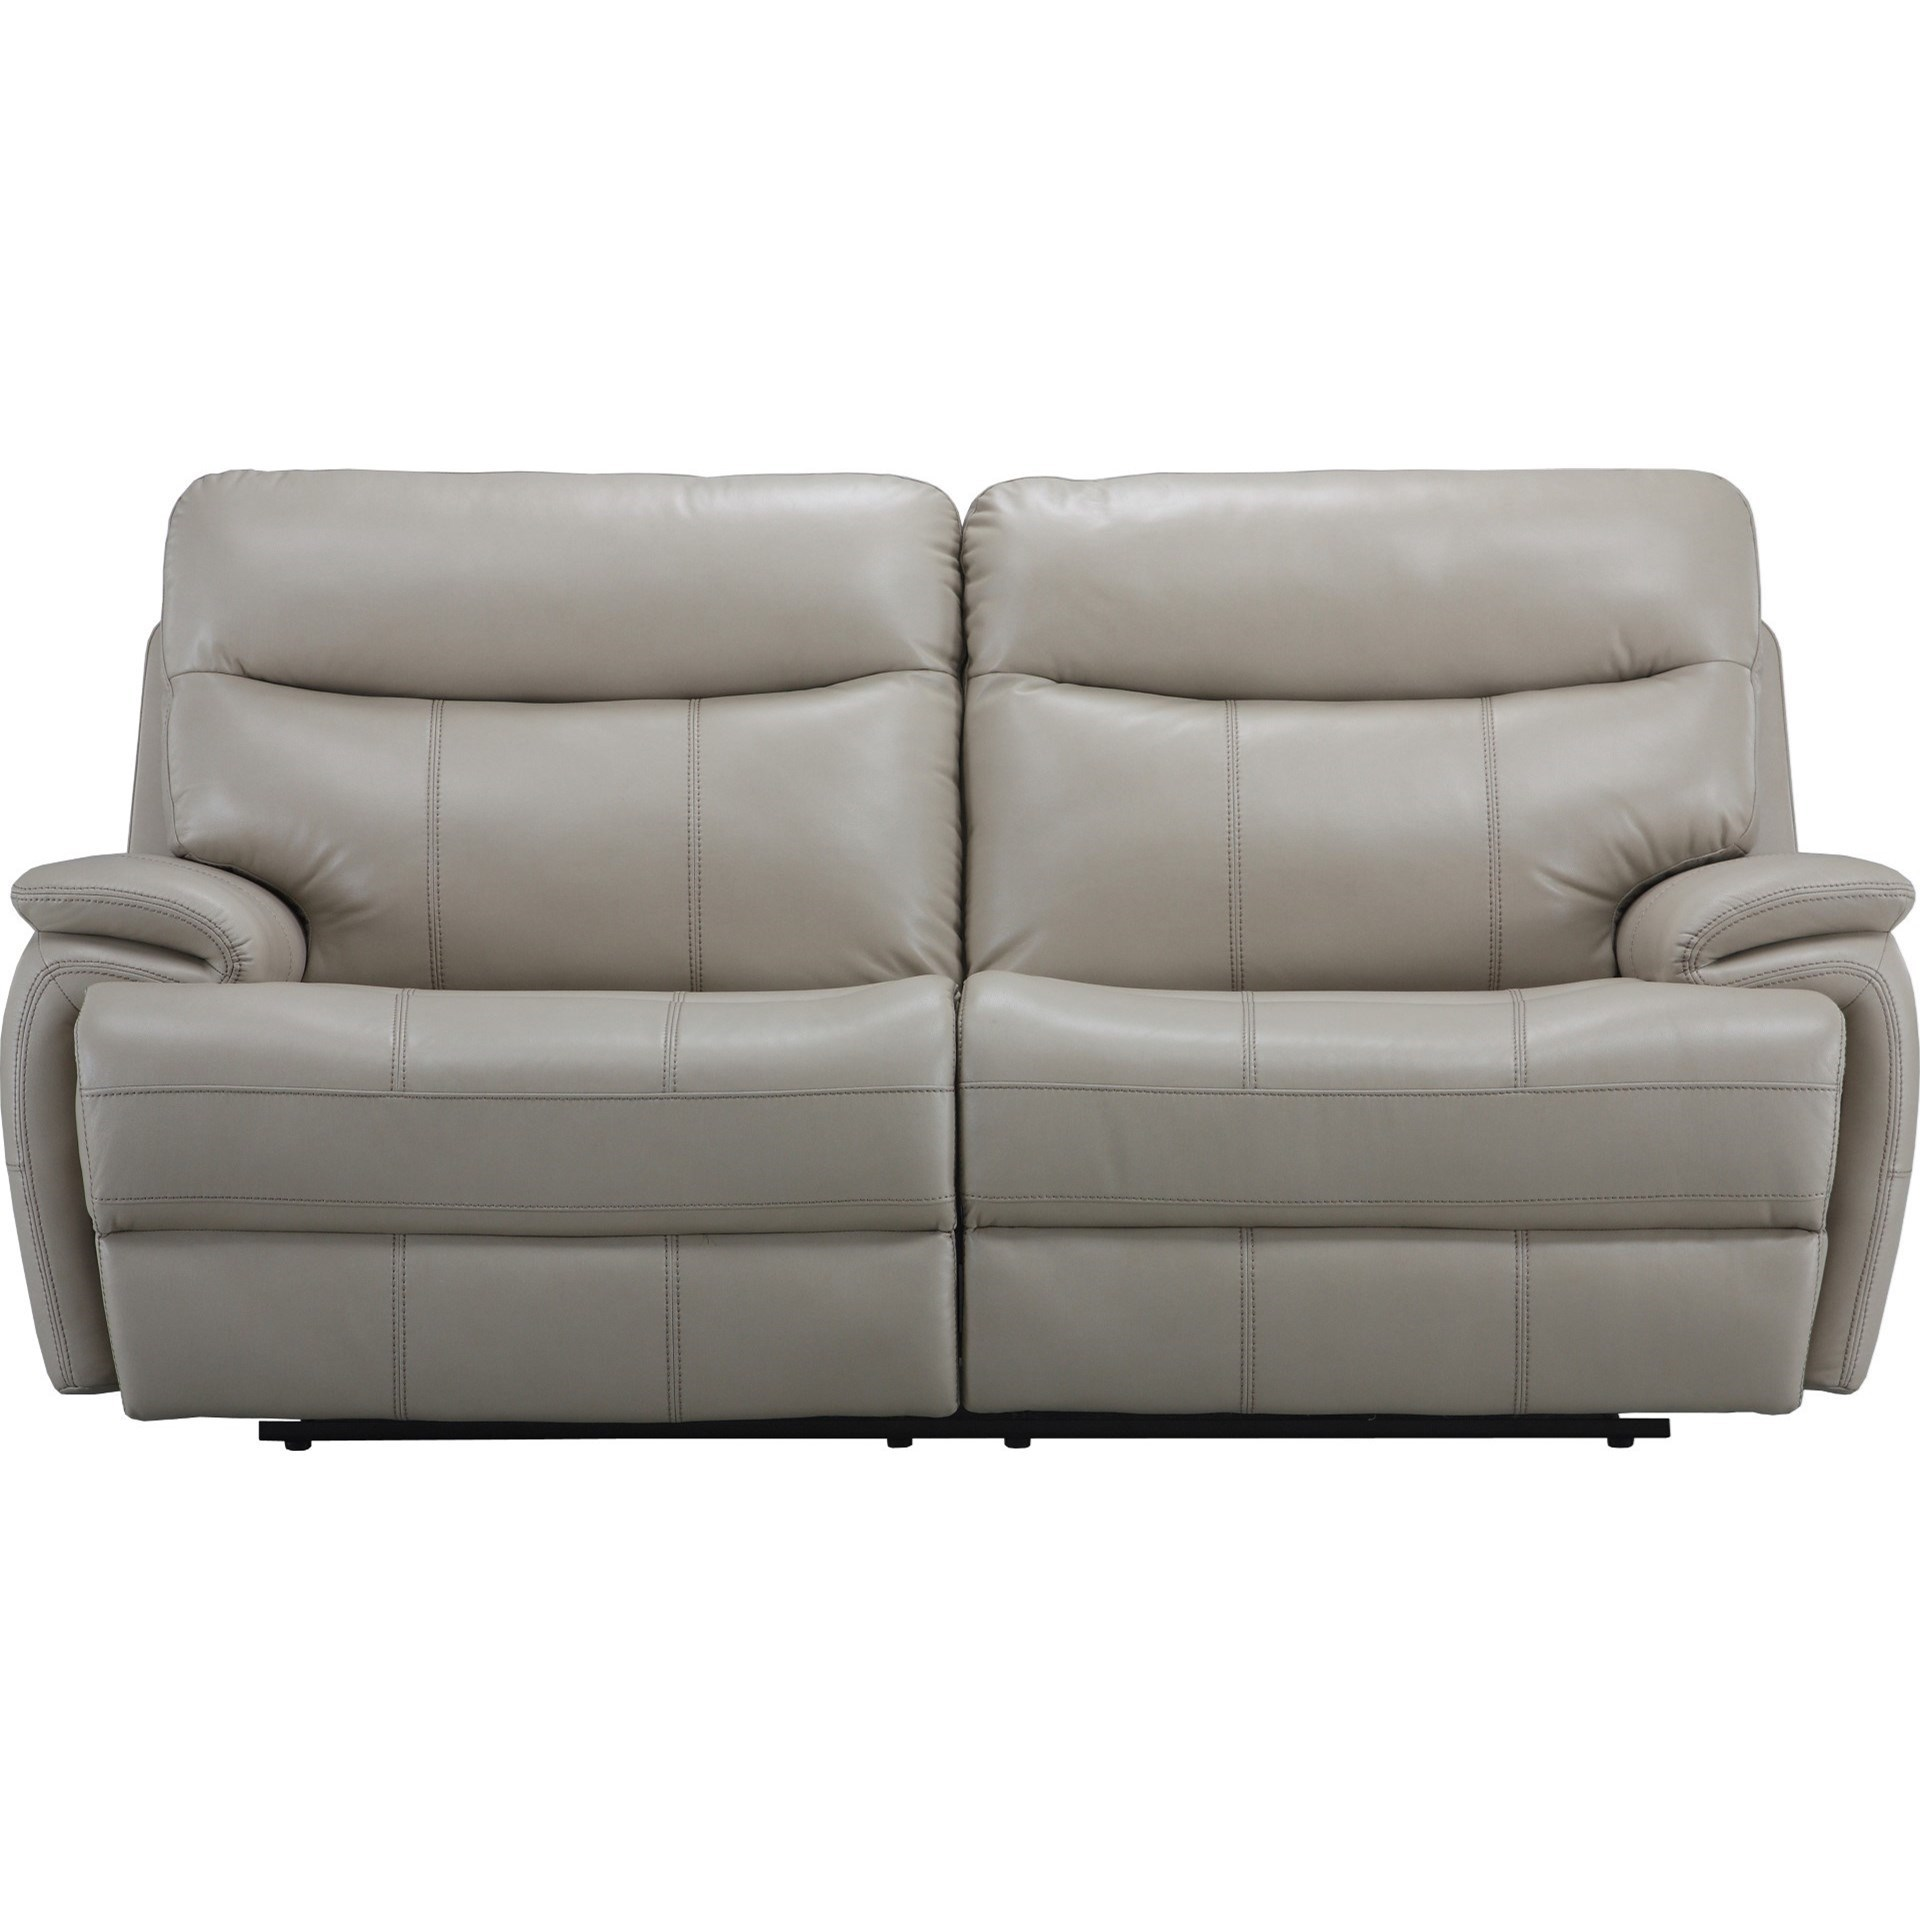 Parker Living DylanPower Dual Reclining Sofa